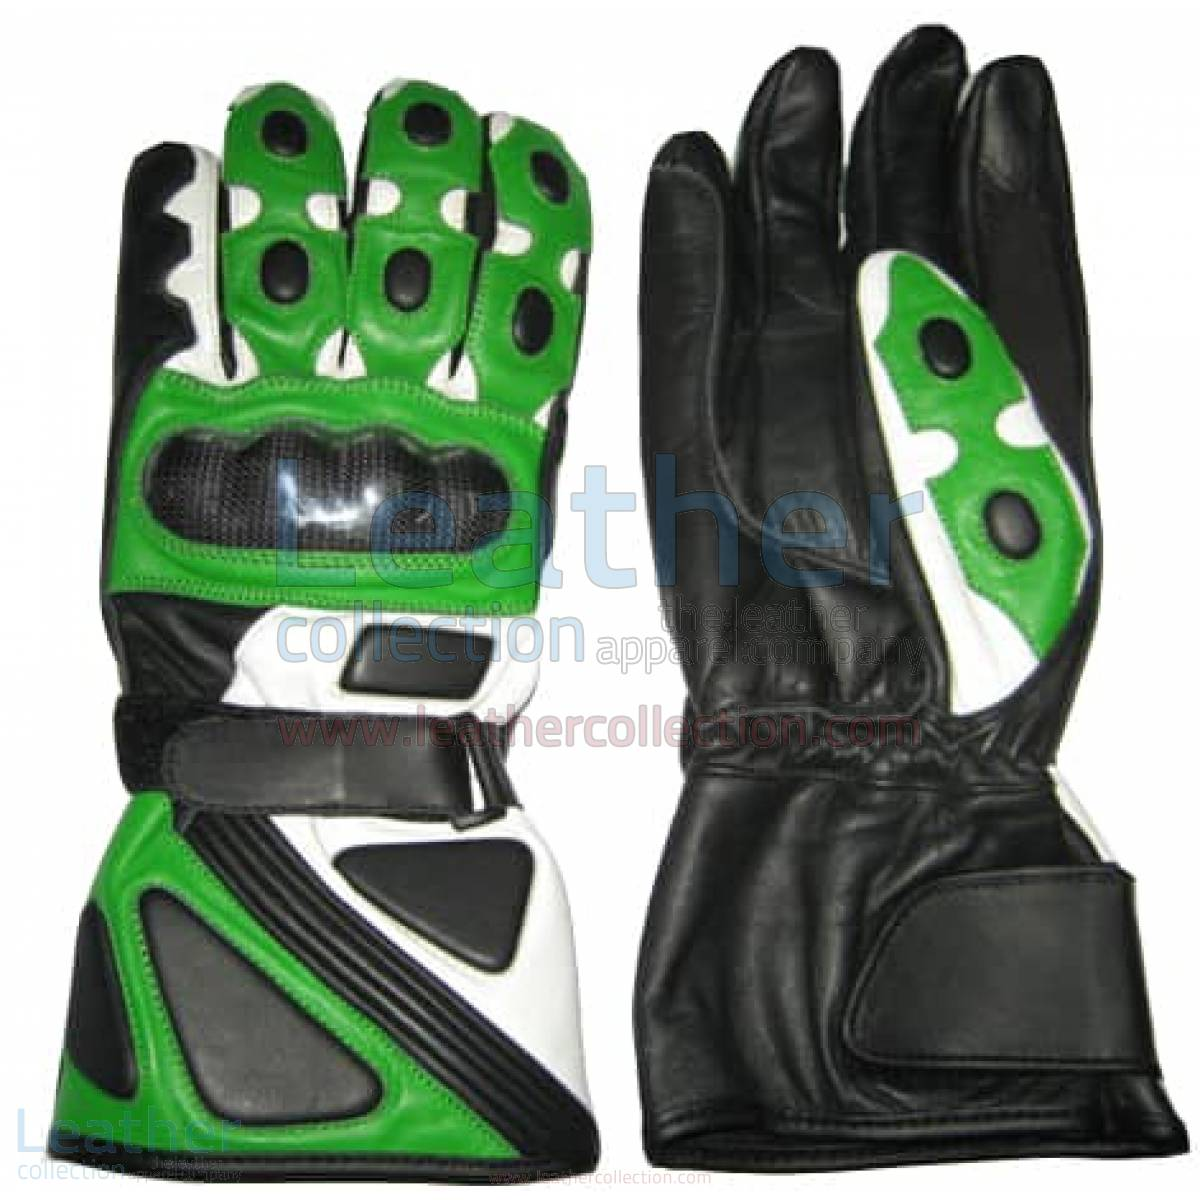 Bravo Green Motorcycle Race Gloves